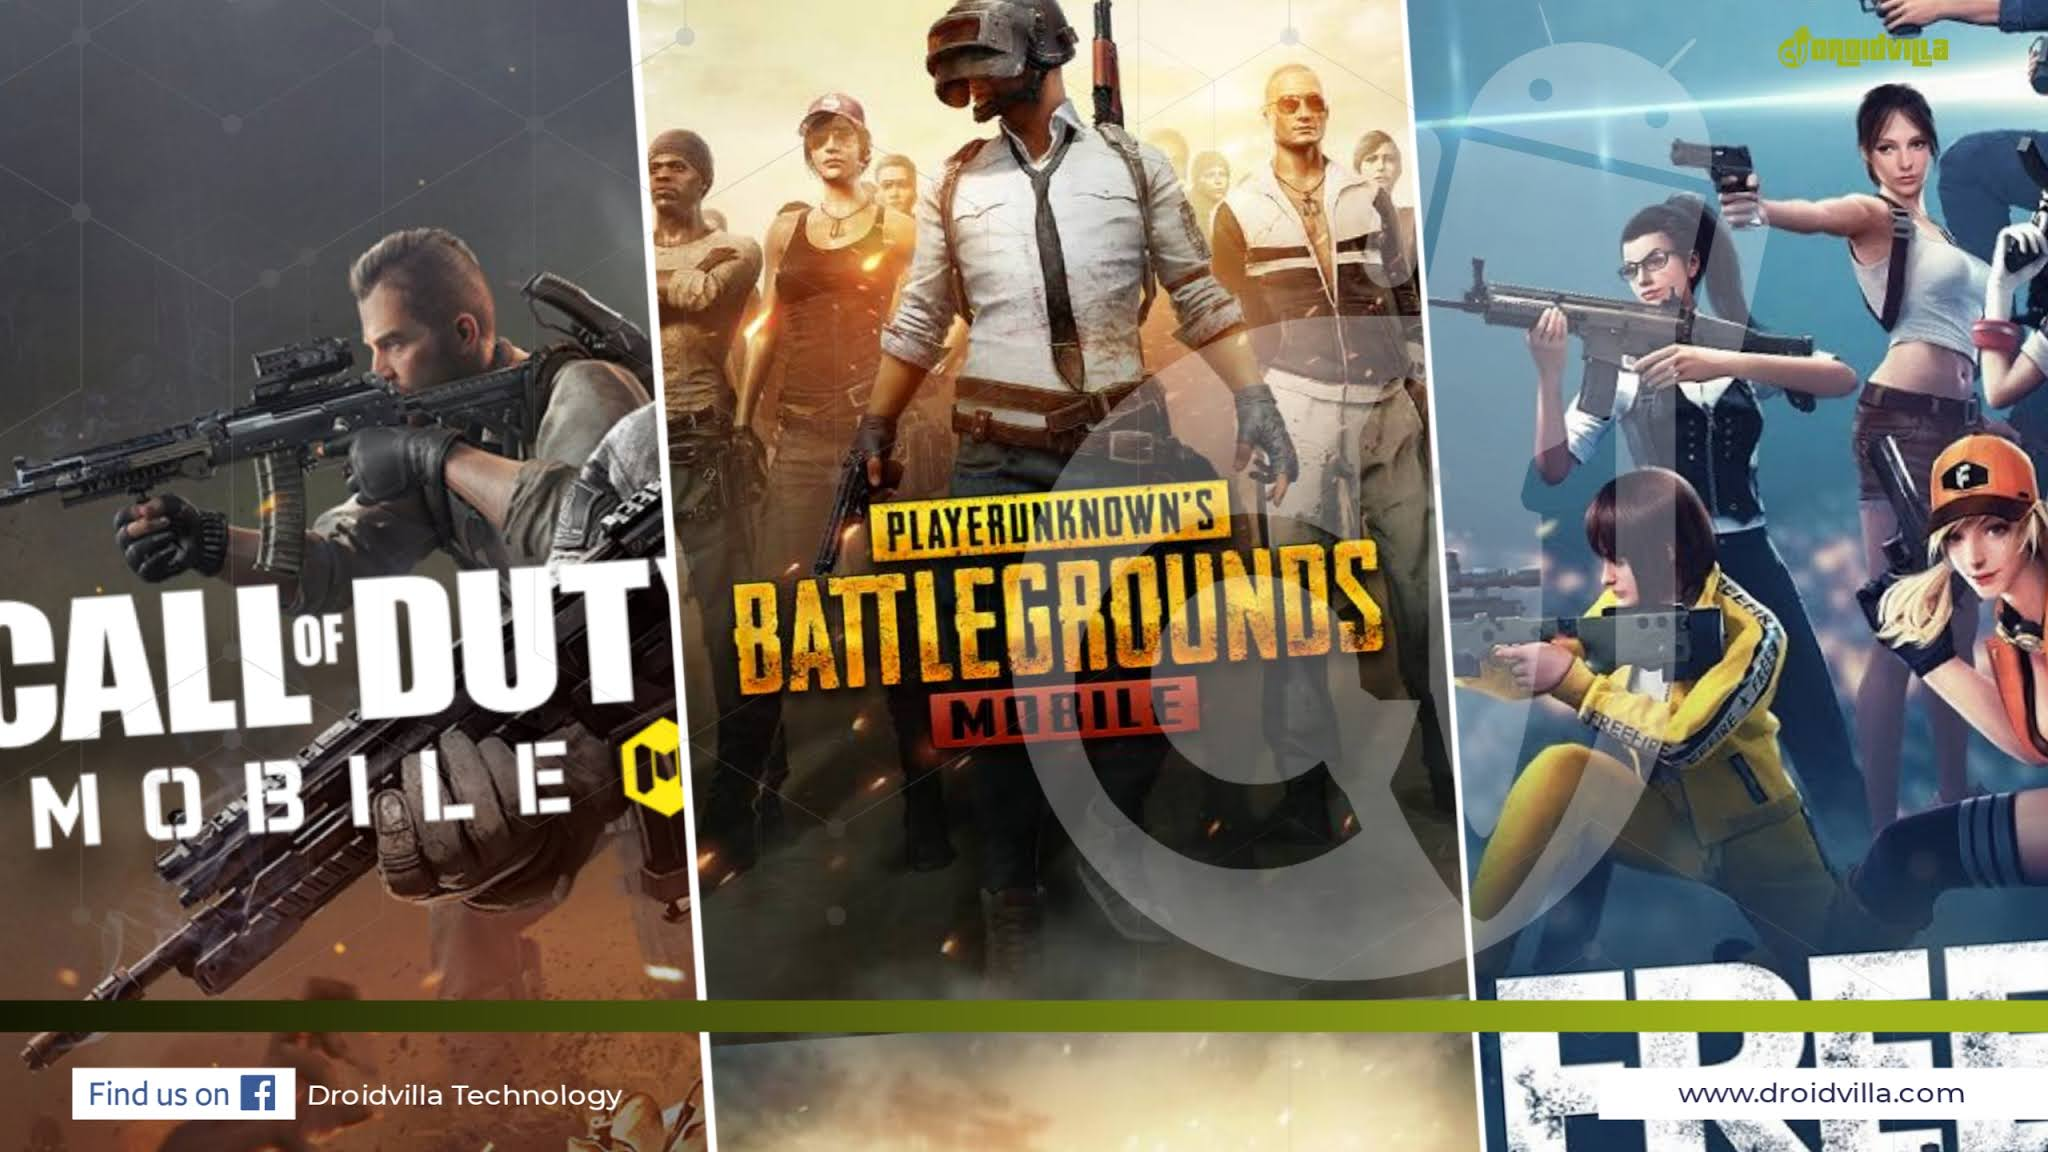 cod-mobile-vs-pubg-mobile-lite-vs-free-fire-the-best-battle-royale-game-for-a-2gb-ram-device-in-2021-droidvilla-technology-solution-android-apk-phone-reviews-technology-updates-tipstricks